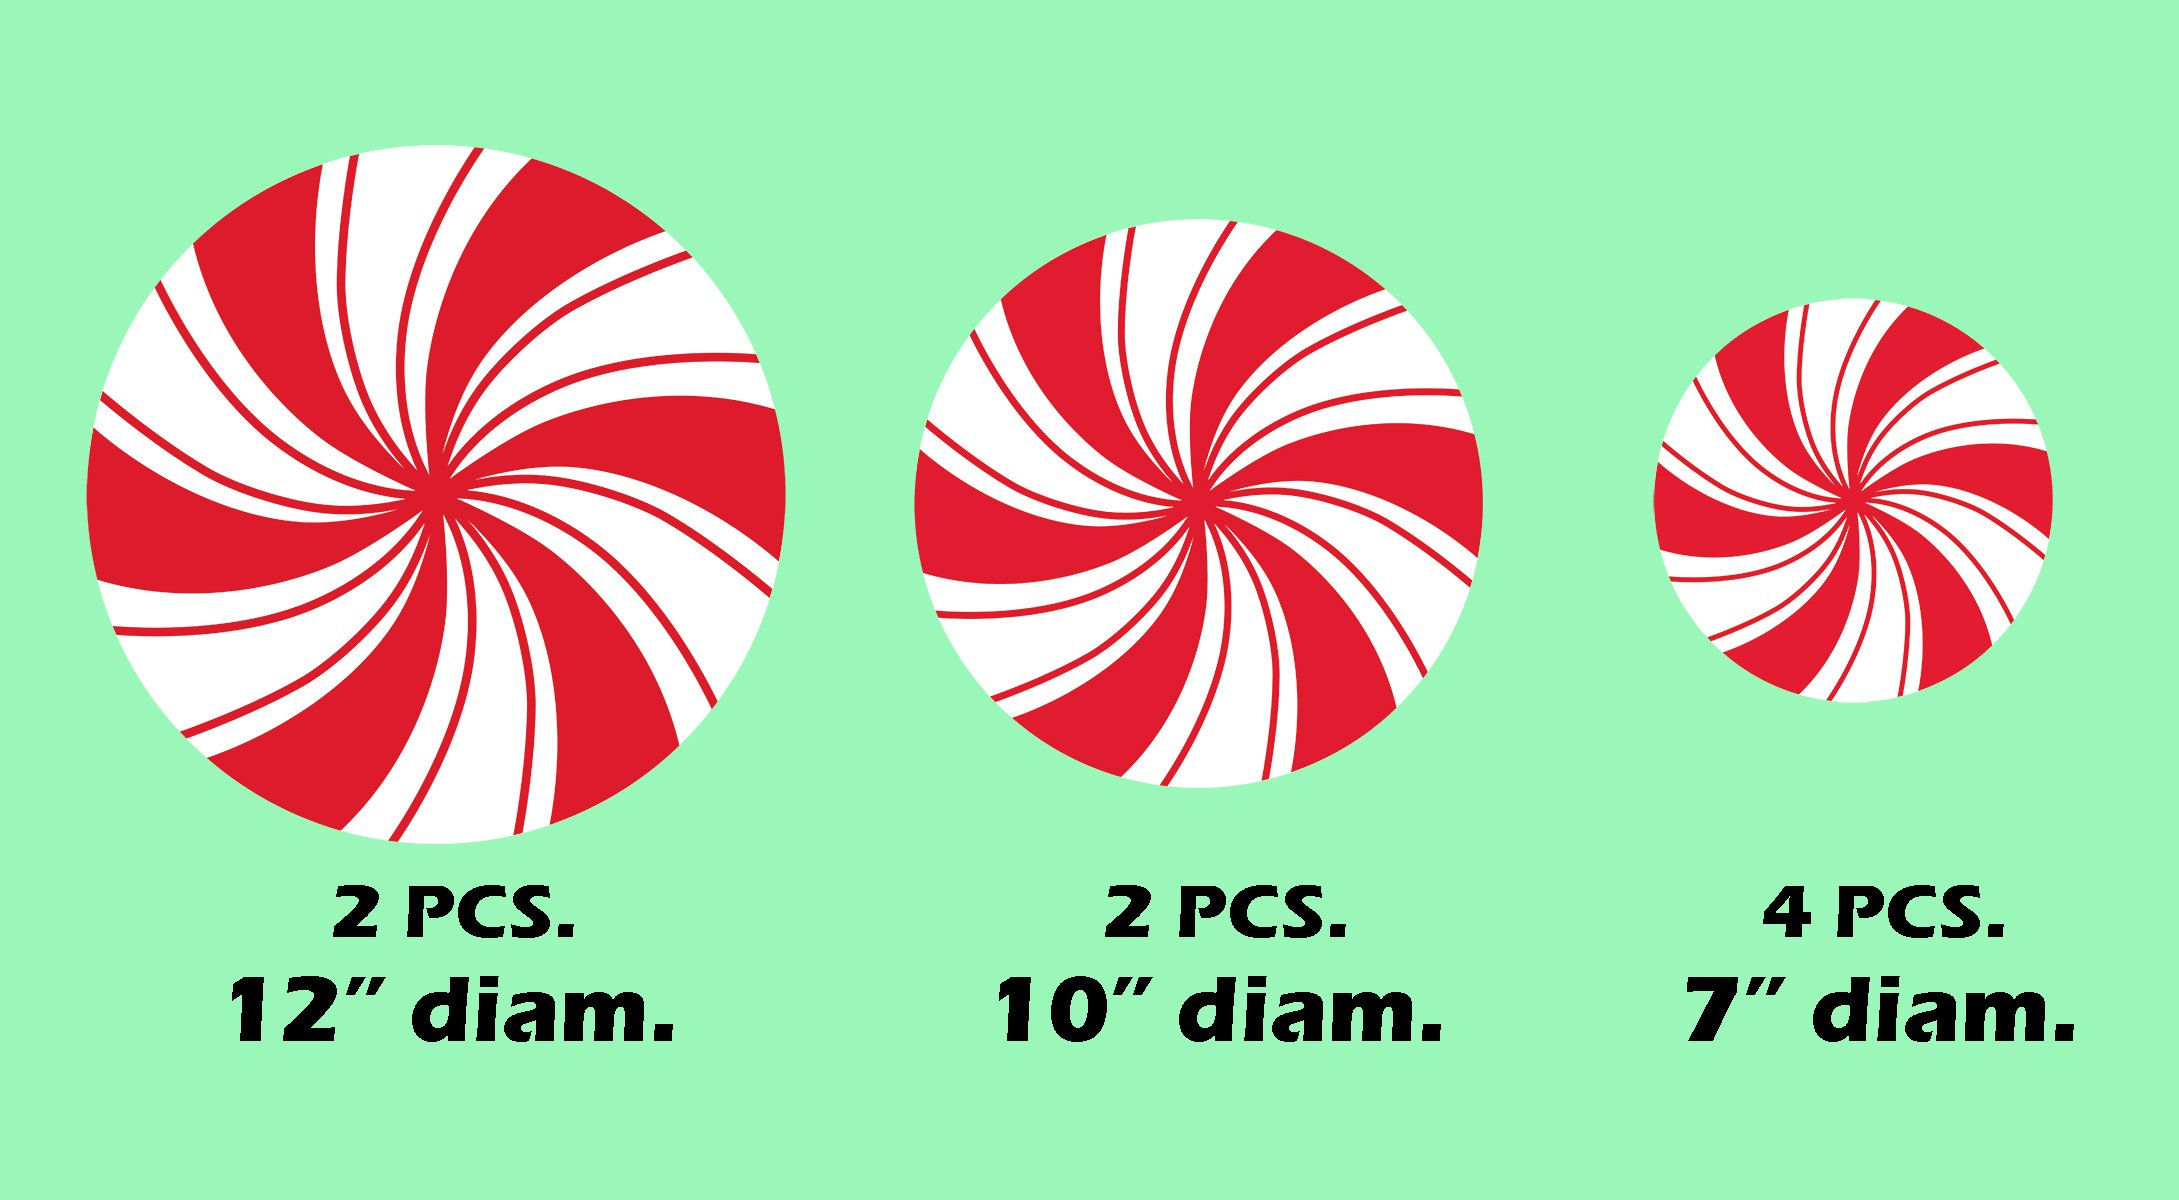 Peppermint Floor Decals Stickers for Christmas Candy Party Decoration 8 Pcs by ceiba tree (Image #2)